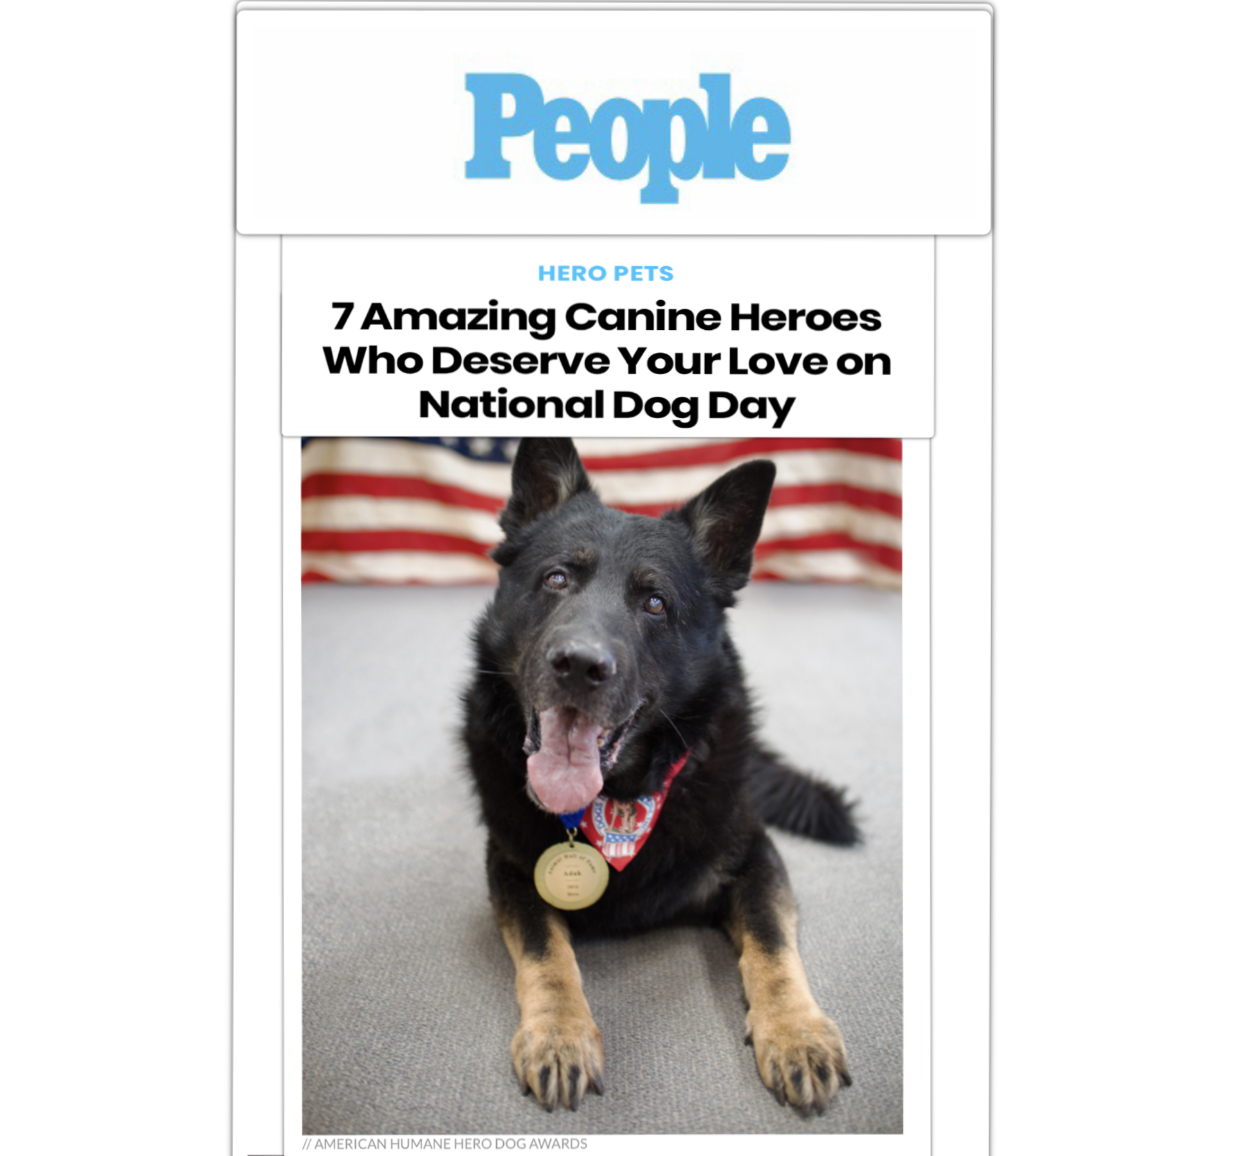 People Magazine - Dog owner or not, most can agree that canines are amazing creatures. The American Humane Hero Dog Awards was created to recognize and honor the bravery and compassion found in every pooch. Each year, the event finds hero dogs that are saving and changing lives every day and has the country vote for a top dog in seven different categories. After receiving more than half a million votes, the American Humane Hero Dog Awards has chosen the winners of each category, which are also the seven finalists for the 2017 American Hero Dog prize.